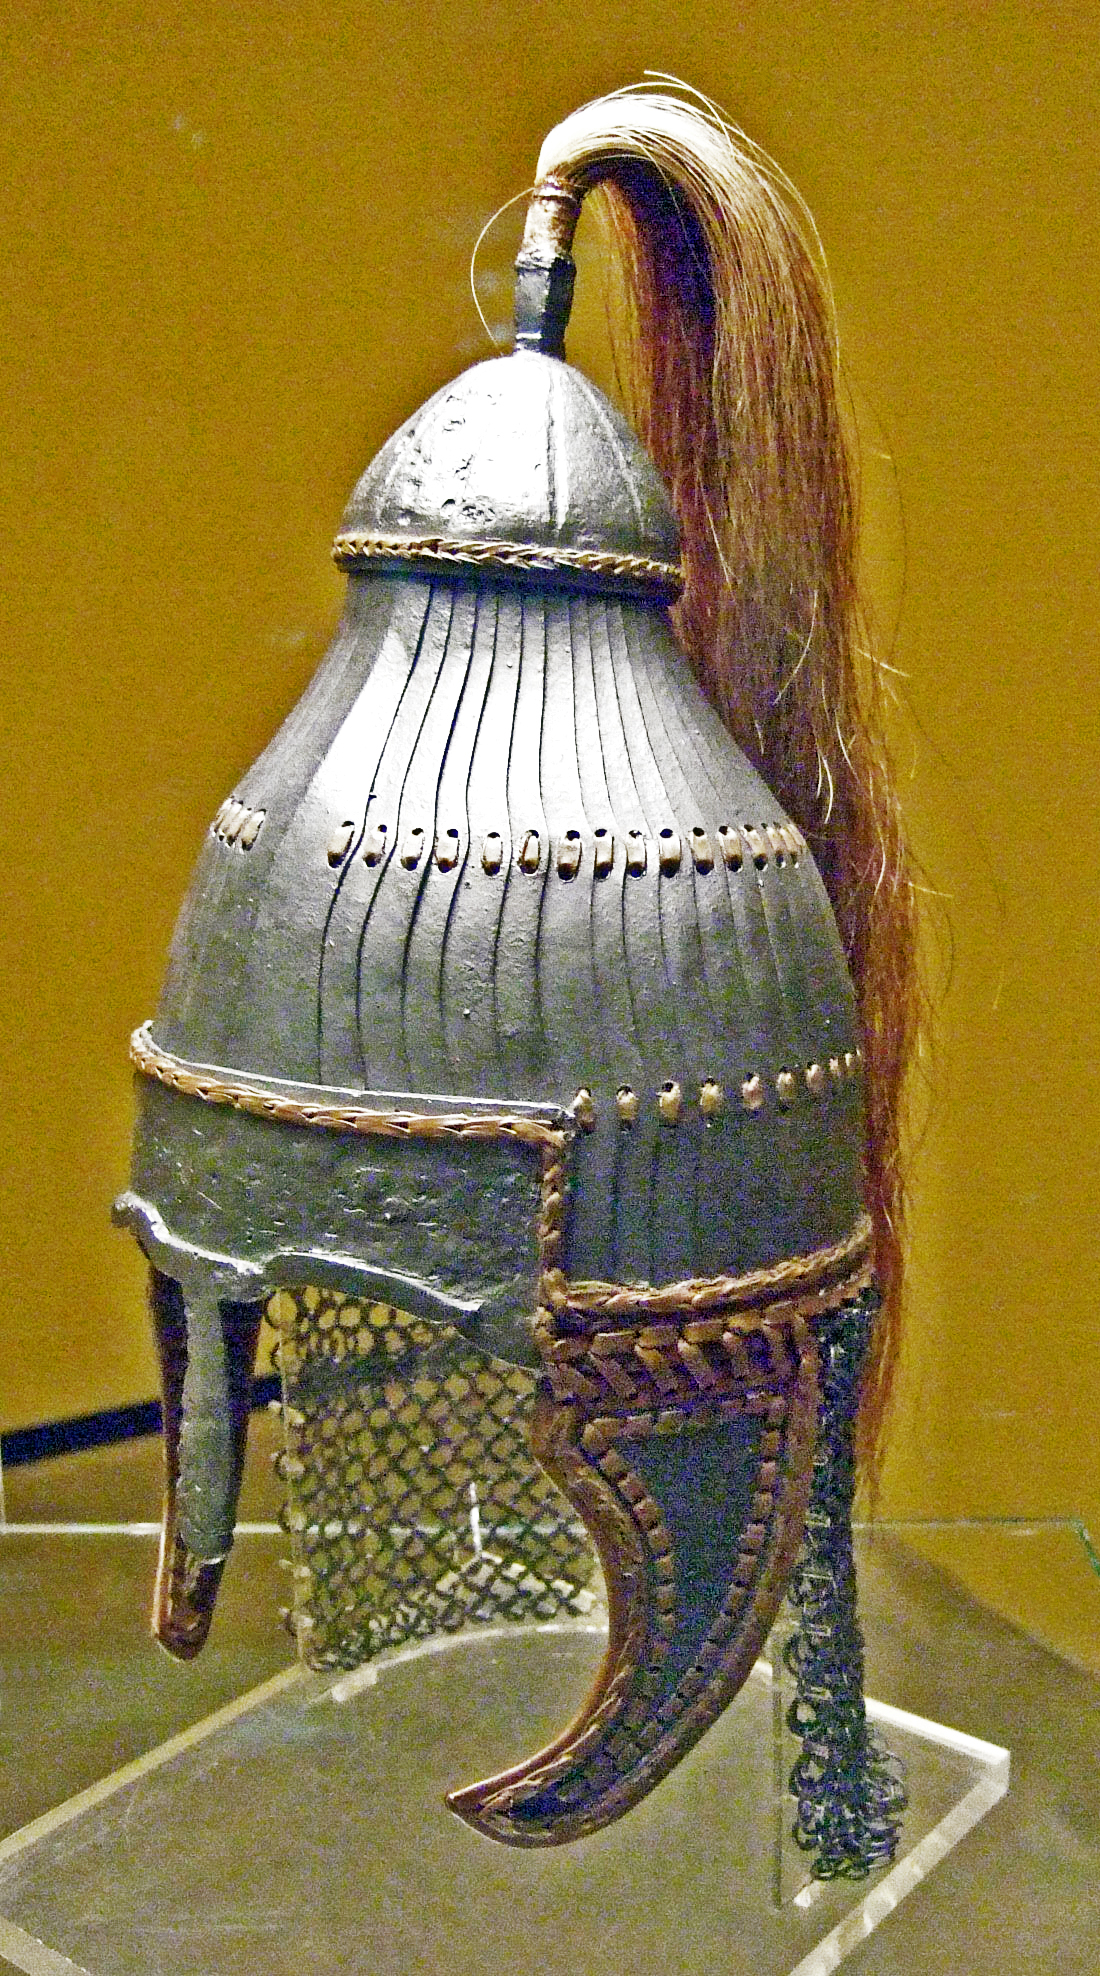 Reconstruction of Lammellen Helmet from Niederstotzingen. Source: Wikipedia